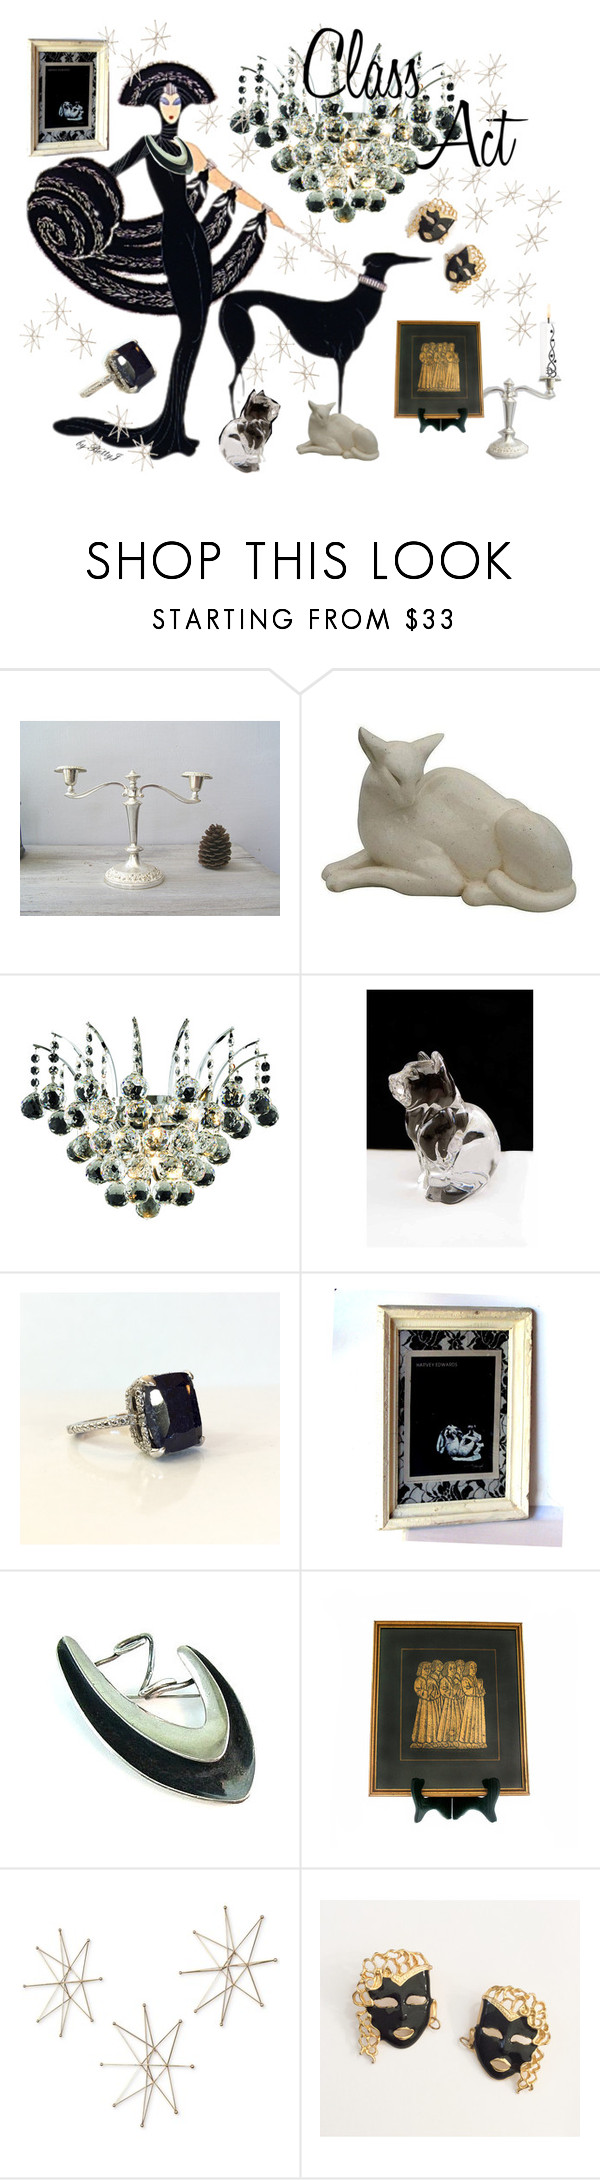 """Class Act"" by plumsandhoneyvintage on Polyvore featuring Elegant Lighting, St. John, Uttermost, Georg Jensen and vintage"